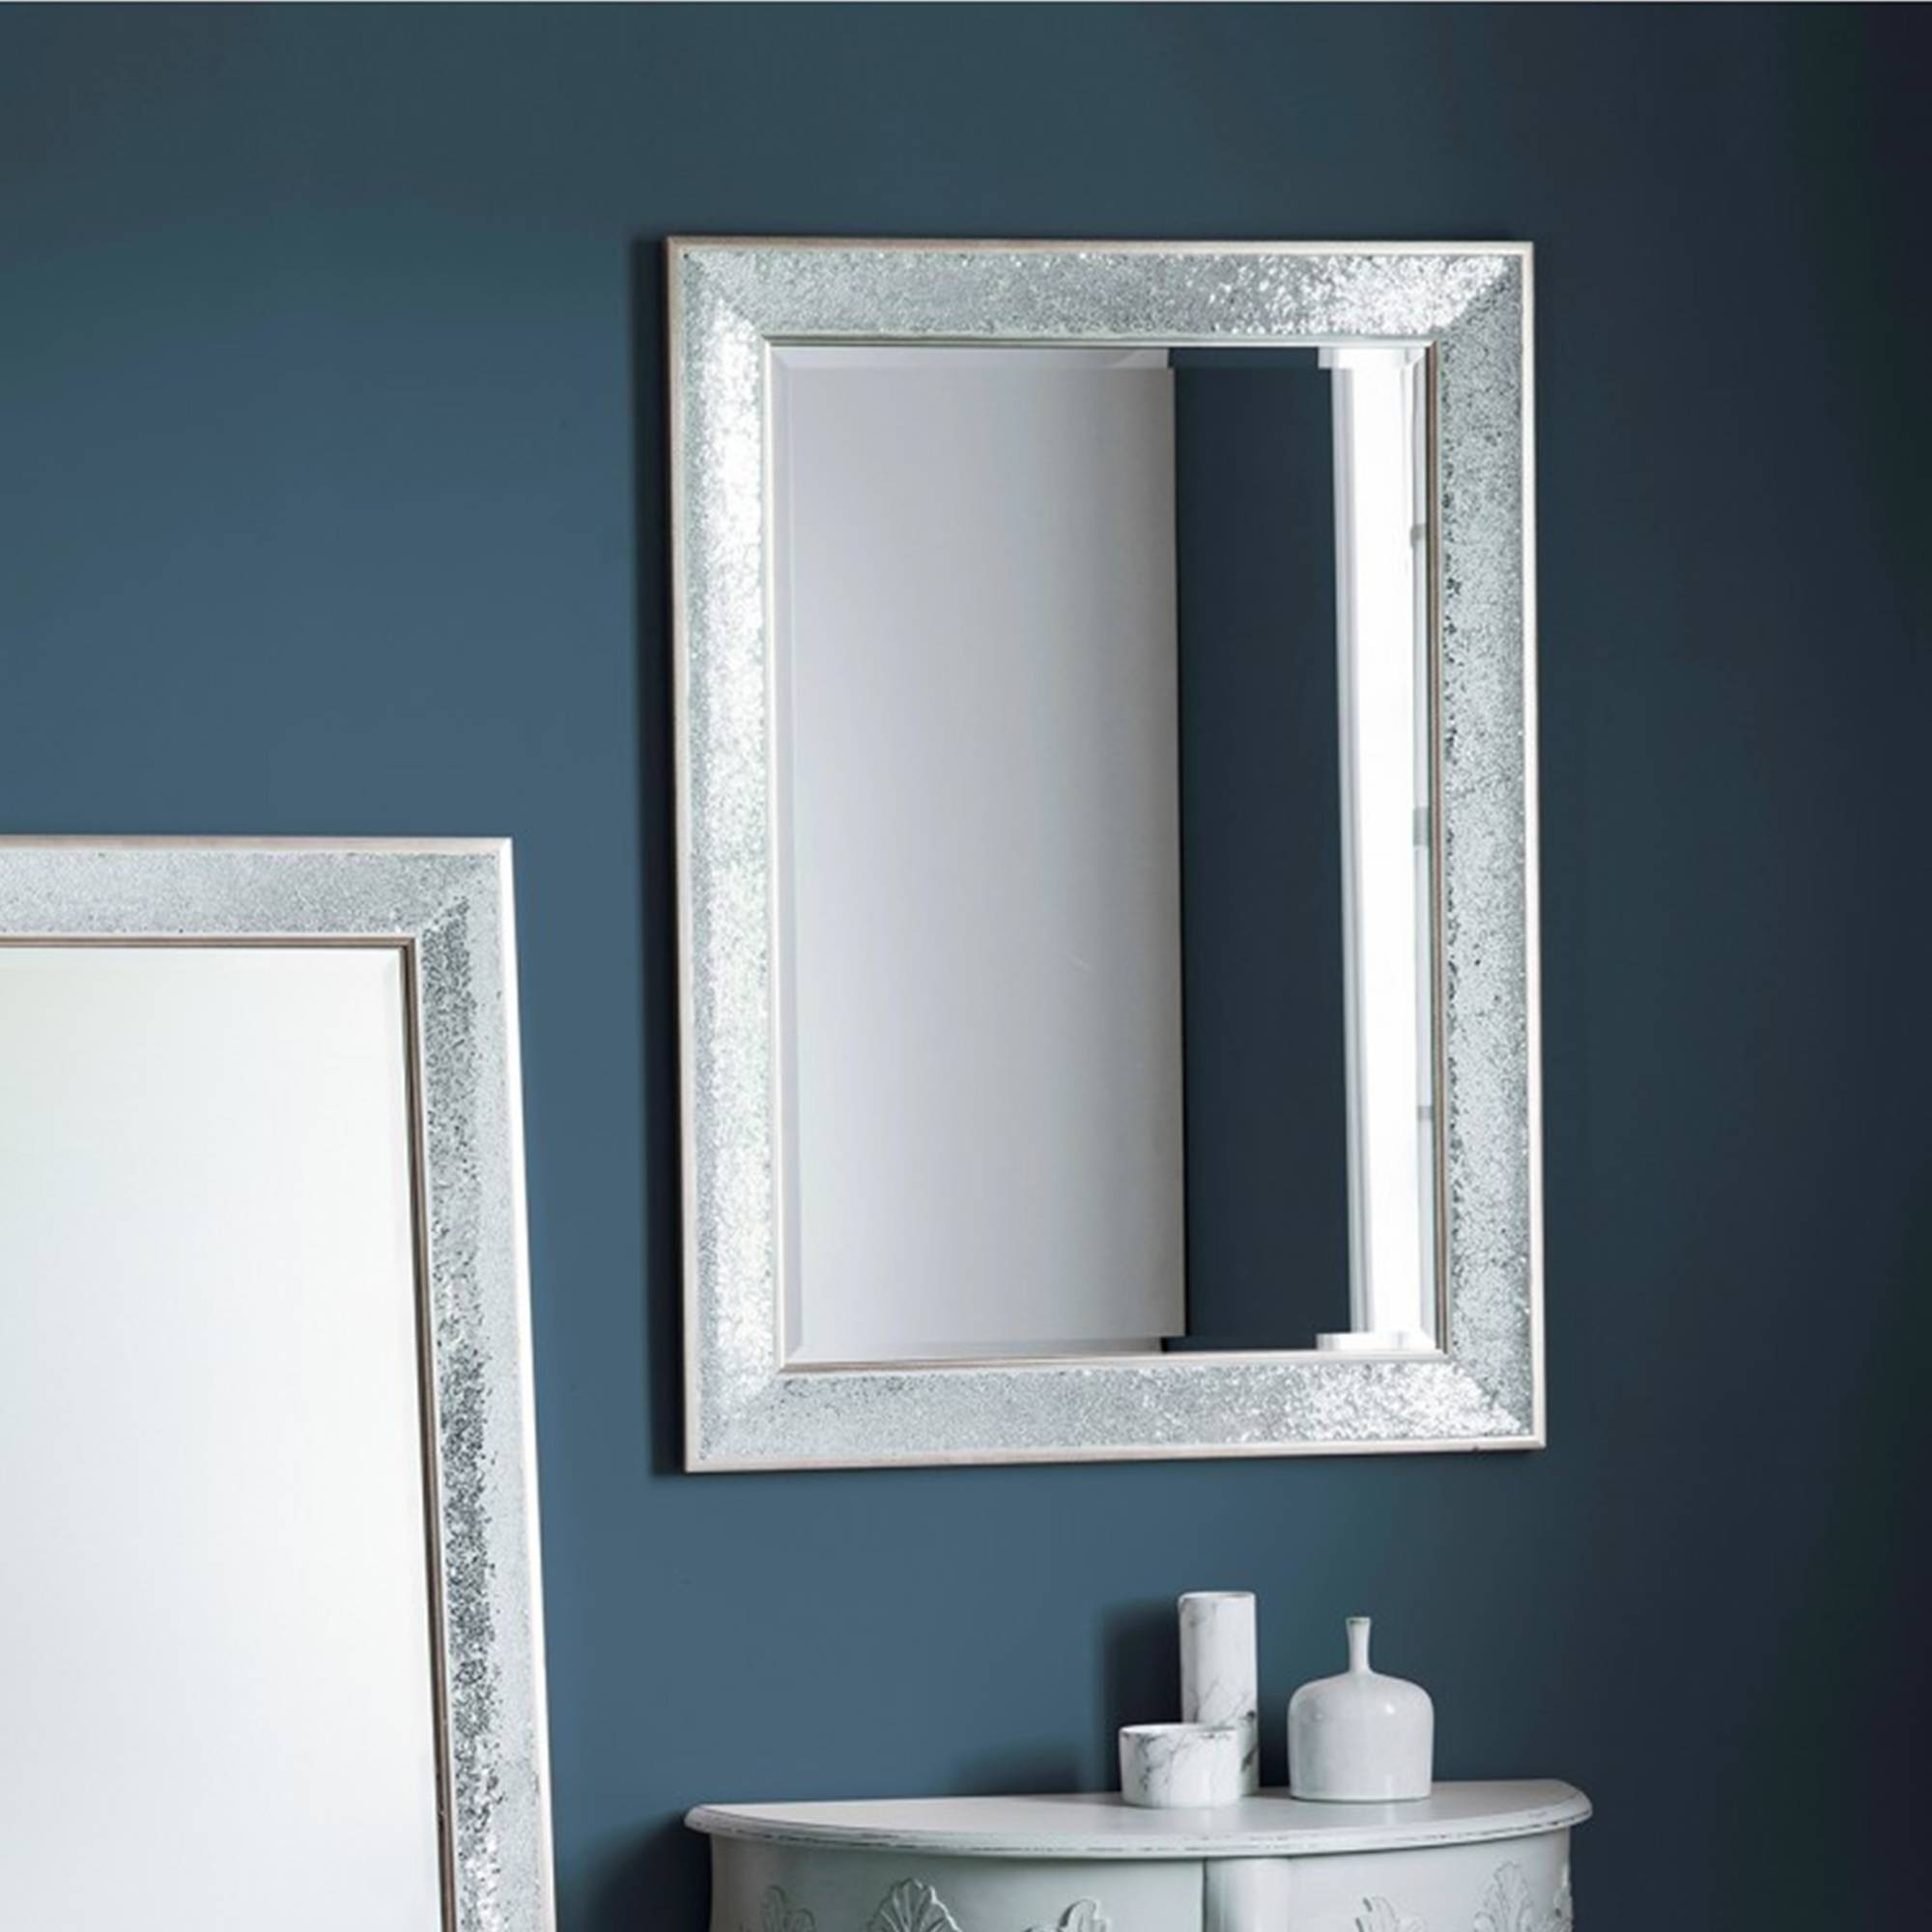 Contemporary Mirrors | Contemporary Wall Mirrors | Modern Mirrors pertaining to Contemporary Wall Mirrors (Image 6 of 25)